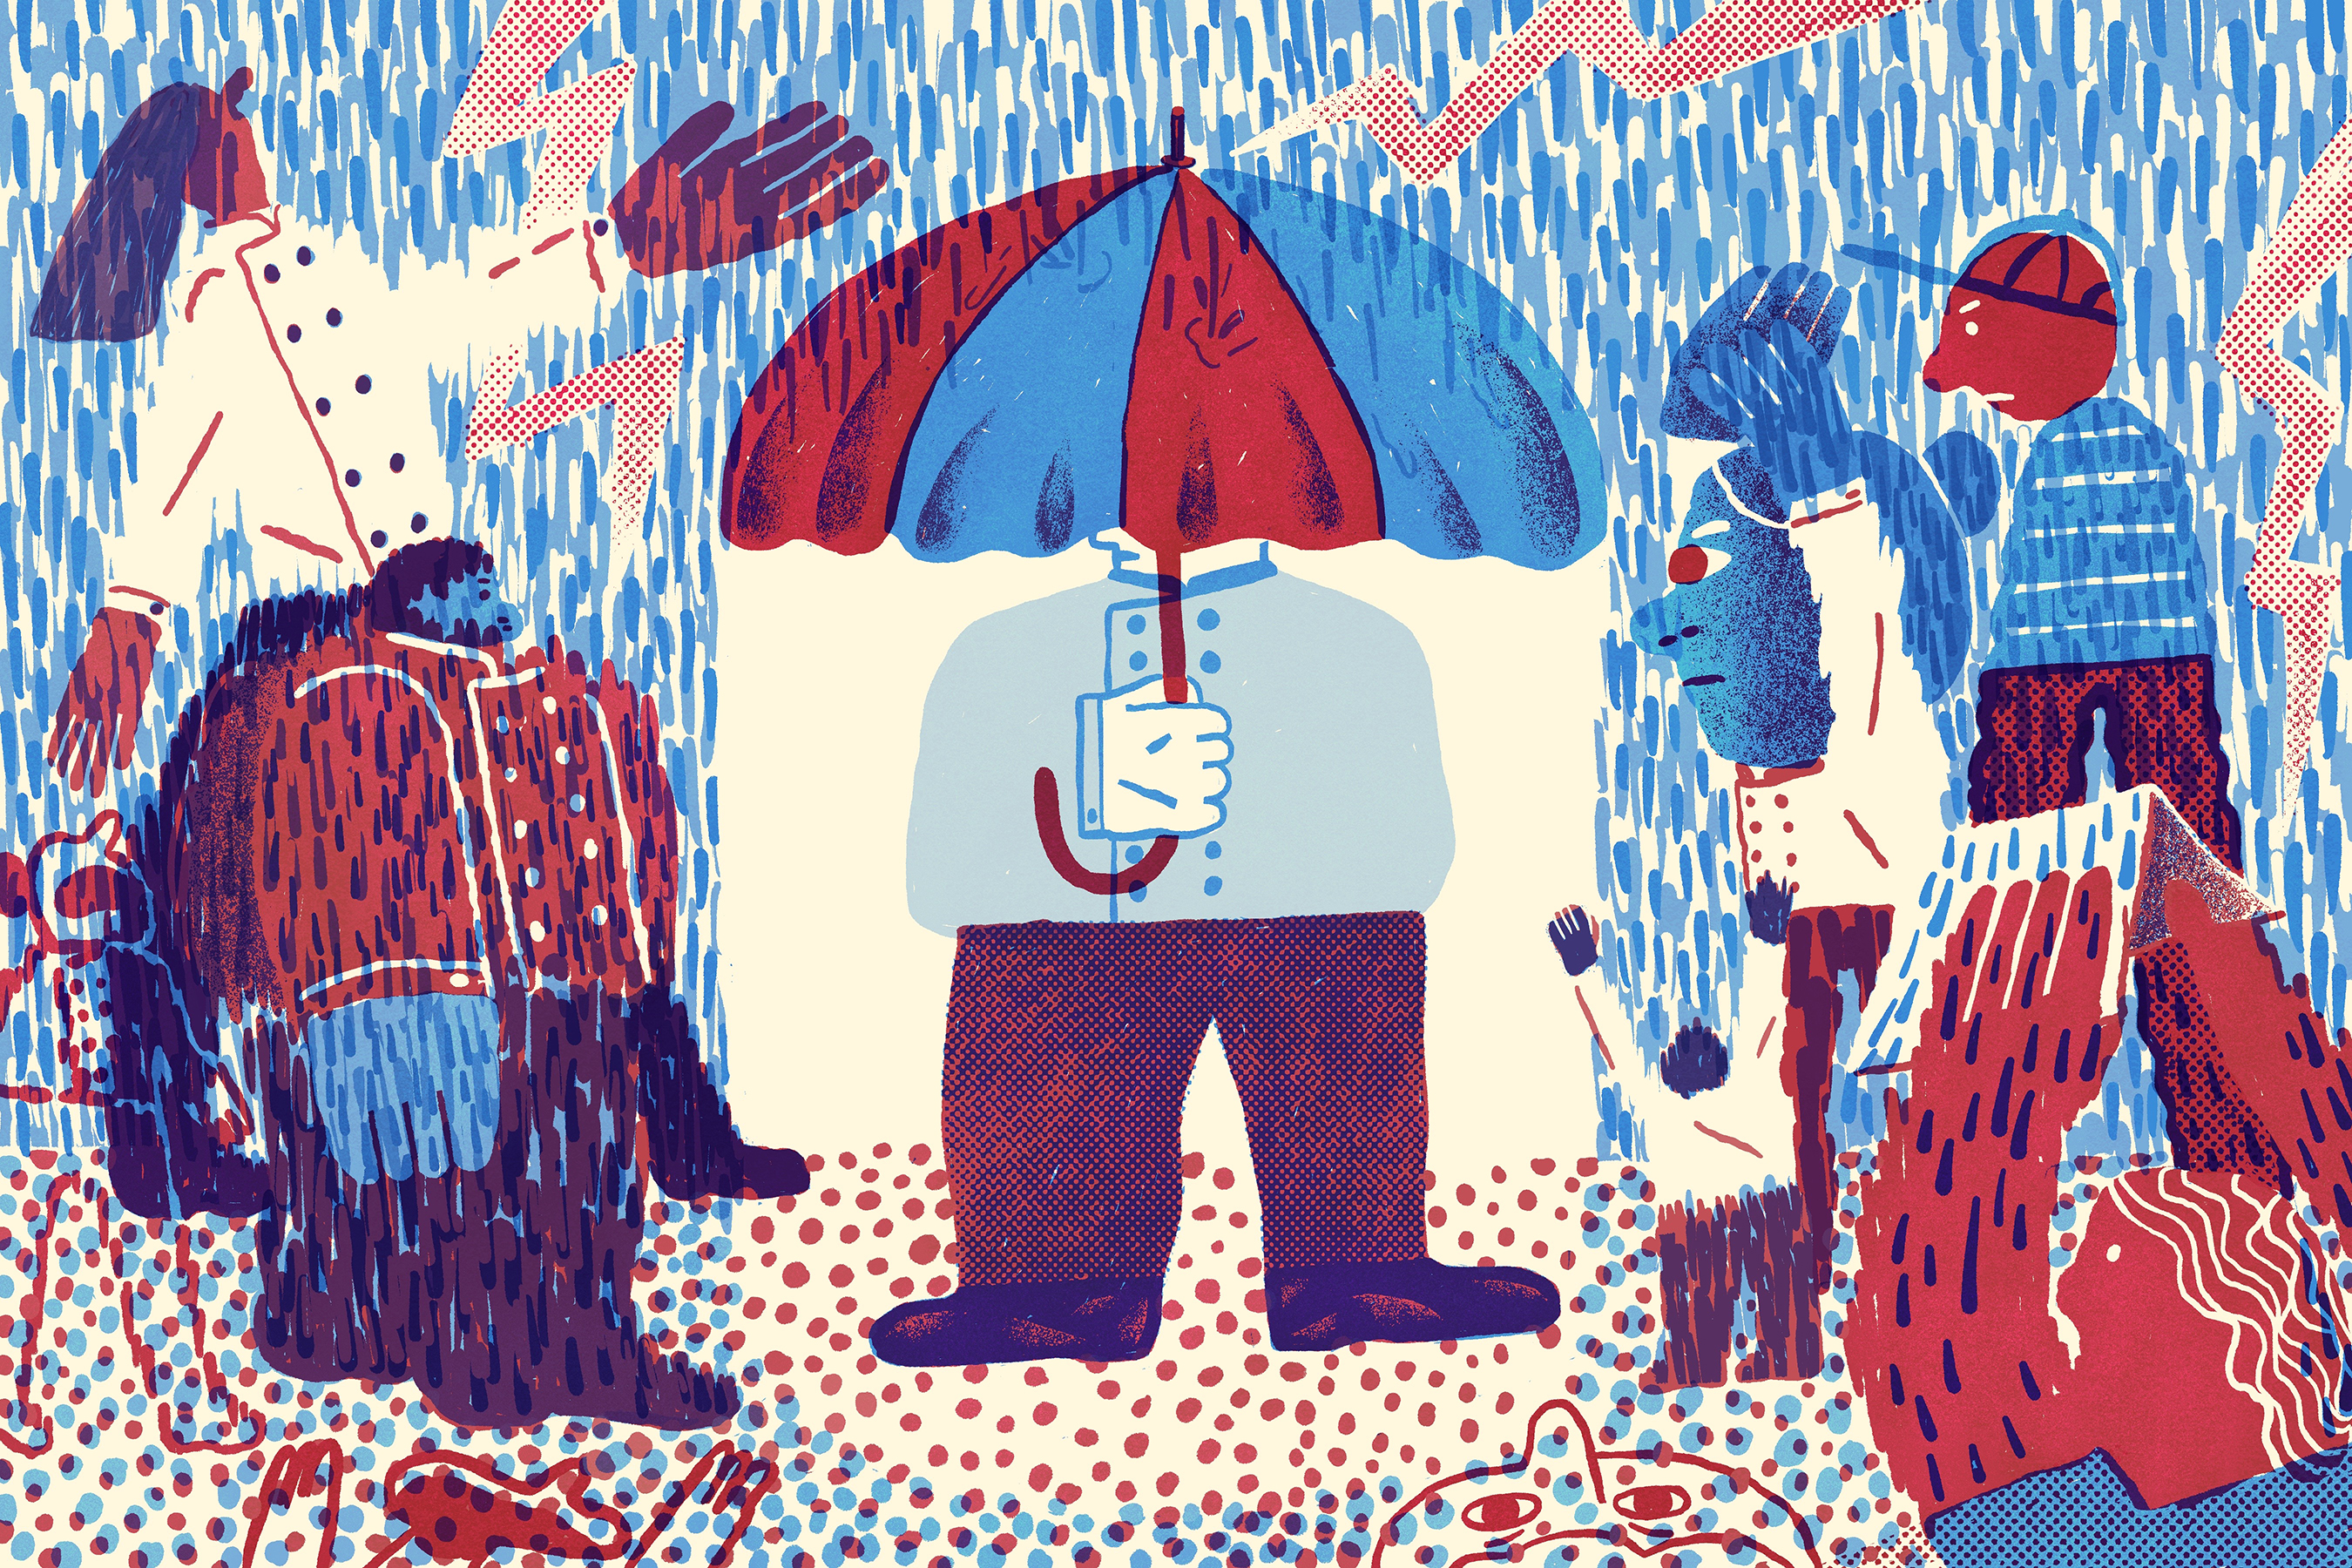 Illustration of man in chef's coat holds umbrella over himself in the pouring rain while all other chefs are left in the rain.